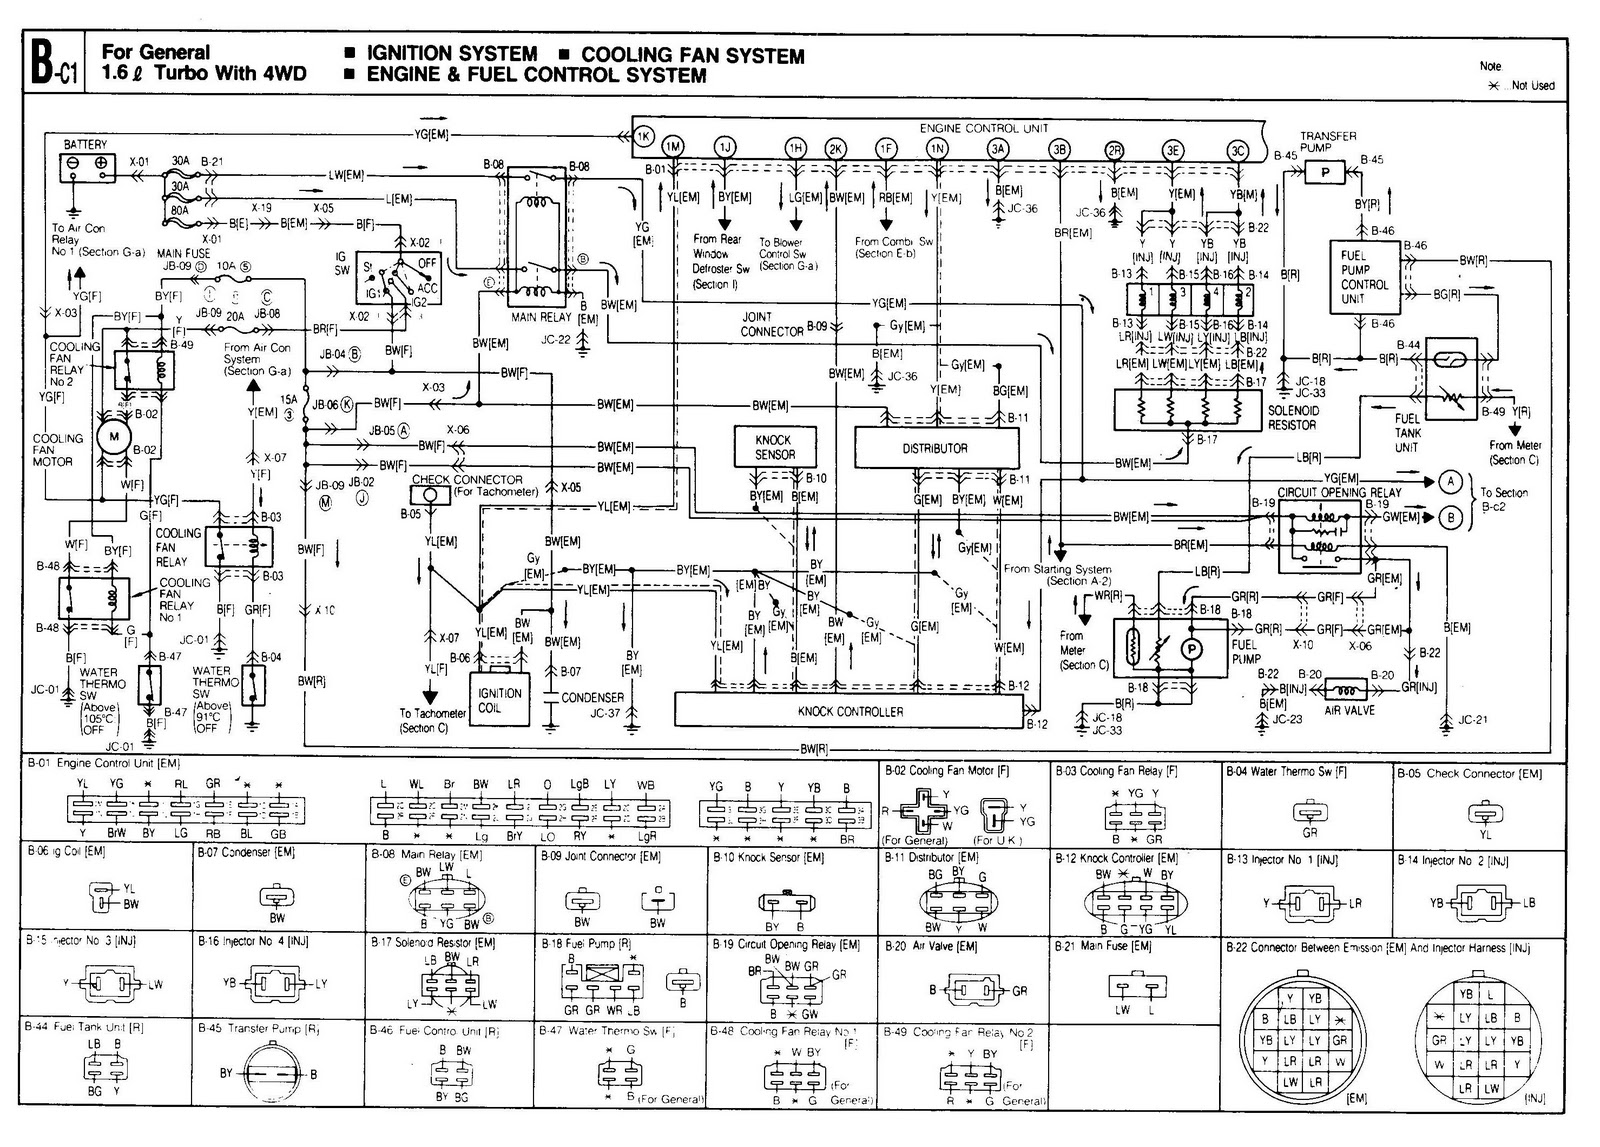 Wiring Diagram 99 honda cr v wiring diagram readingrat net Mazda 6 Stereo Diagram at mifinder.co